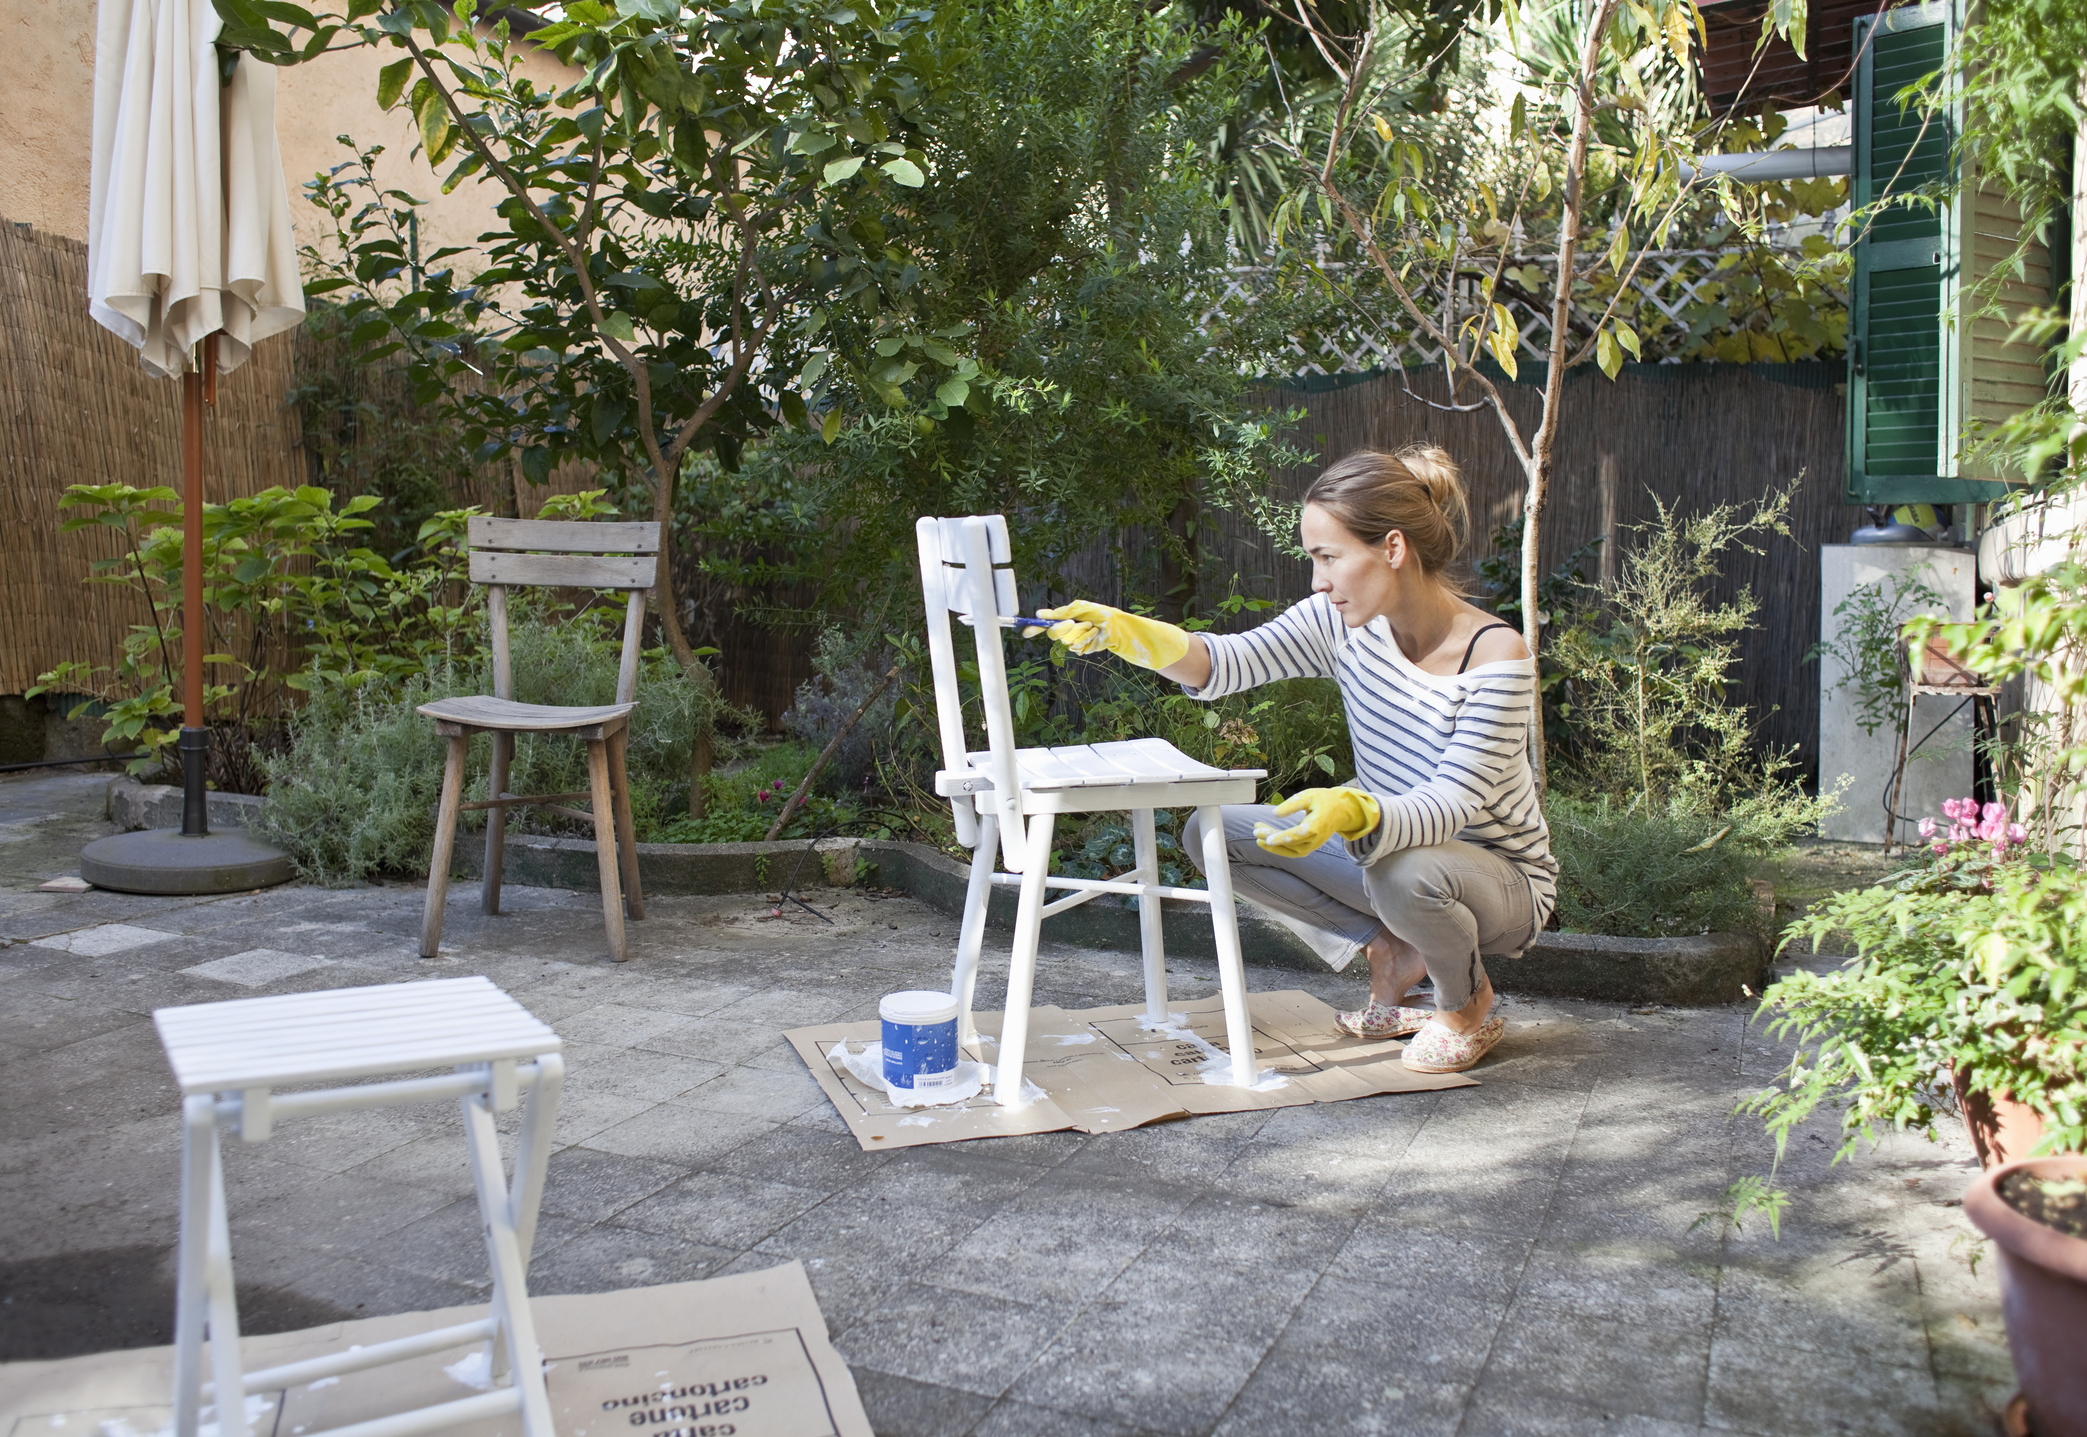 painting-wooden-chairs.jpg